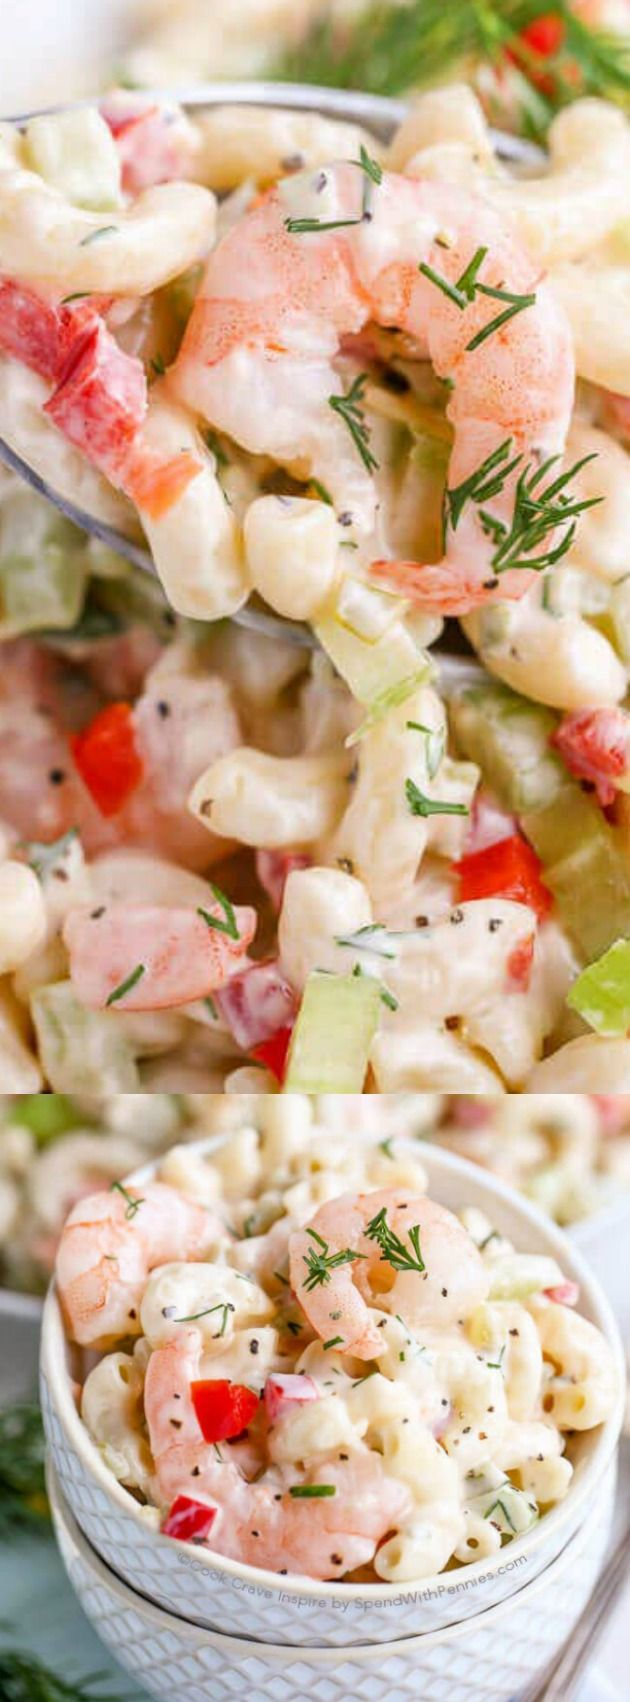 This Shrimp Pasta Salad from Spend with Pennies makes the perfect dish to take to your next potluck or family gathering! It is so easy to make and comes together in just a few minutes.